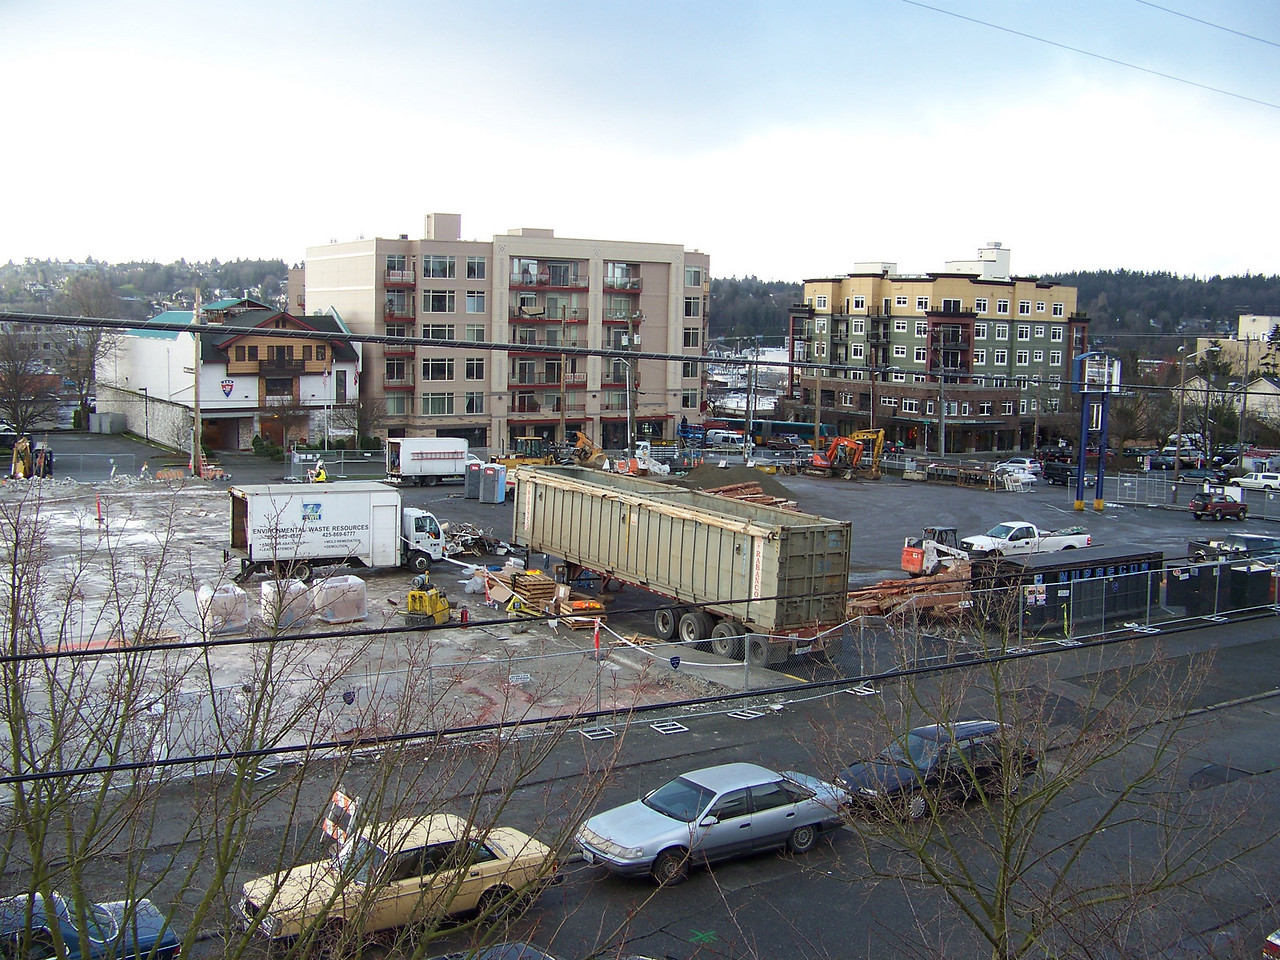 January 11, 2008.  With the old Ballard QFC building demolished, isn't that a nice, opened-up view?  I can't believe it's going to be filled by a seven-story building!!!